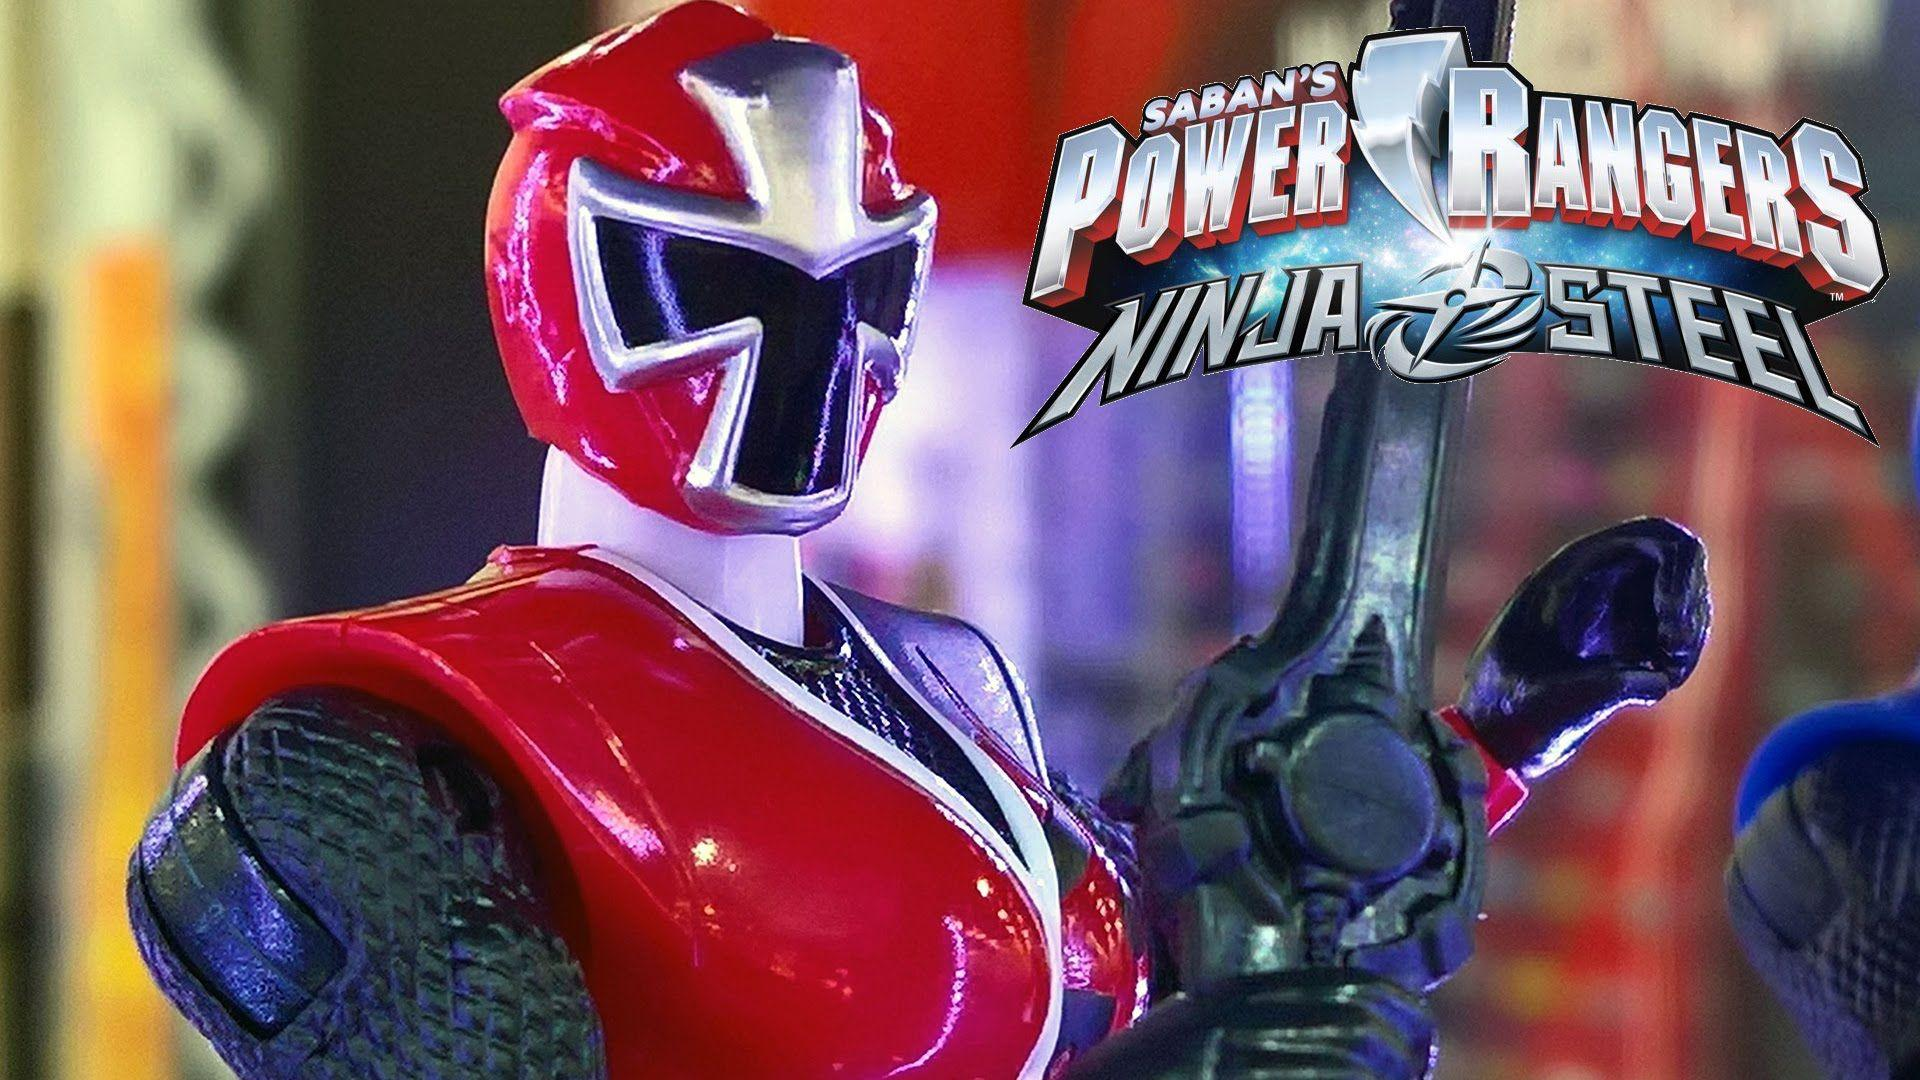 Power Rangers Ninja Steel Wallpapers - Wallpaper Cave